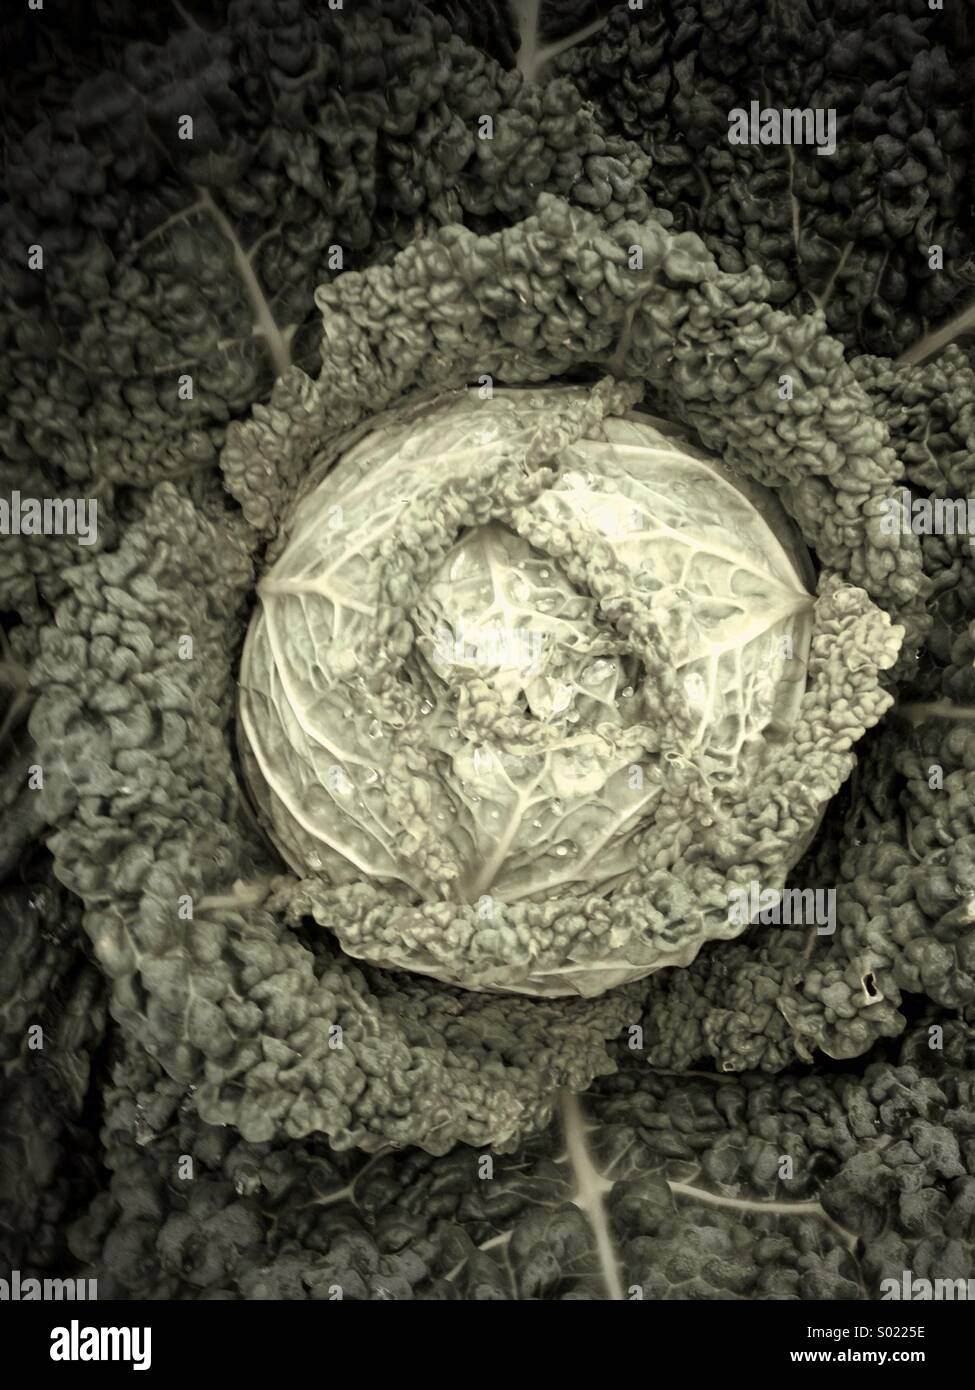 Cabbage ready for harvest - Stock Image